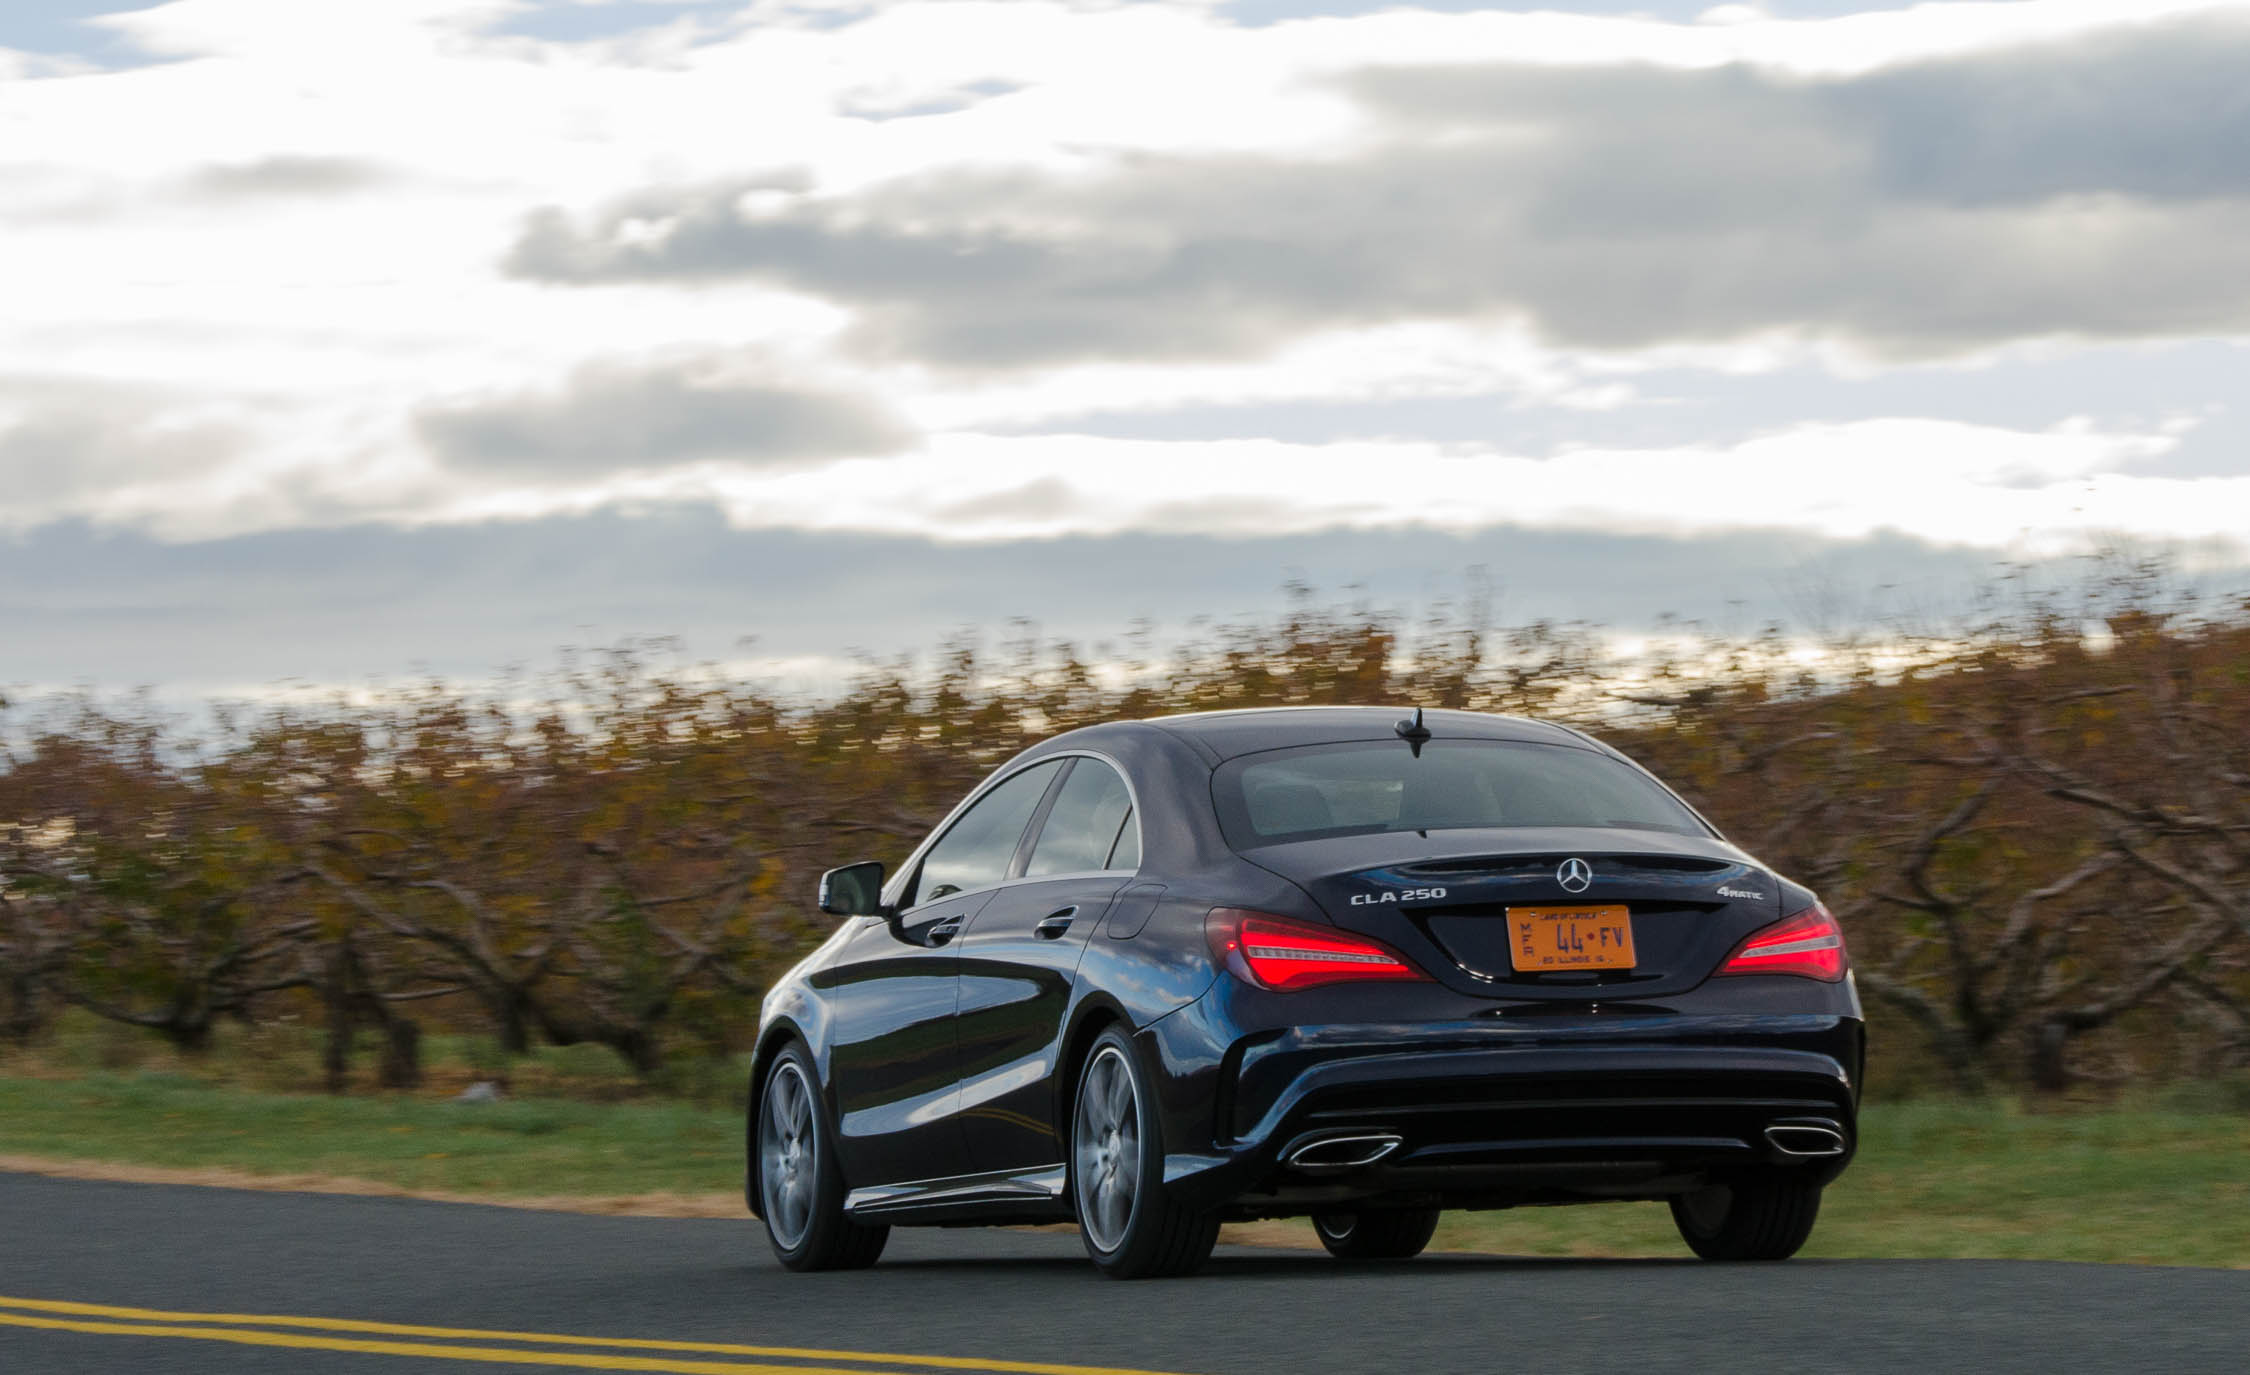 2017 Mercedes Benz CLA250 4MATIC Test Drive Rear View (Photo 19 of 21)